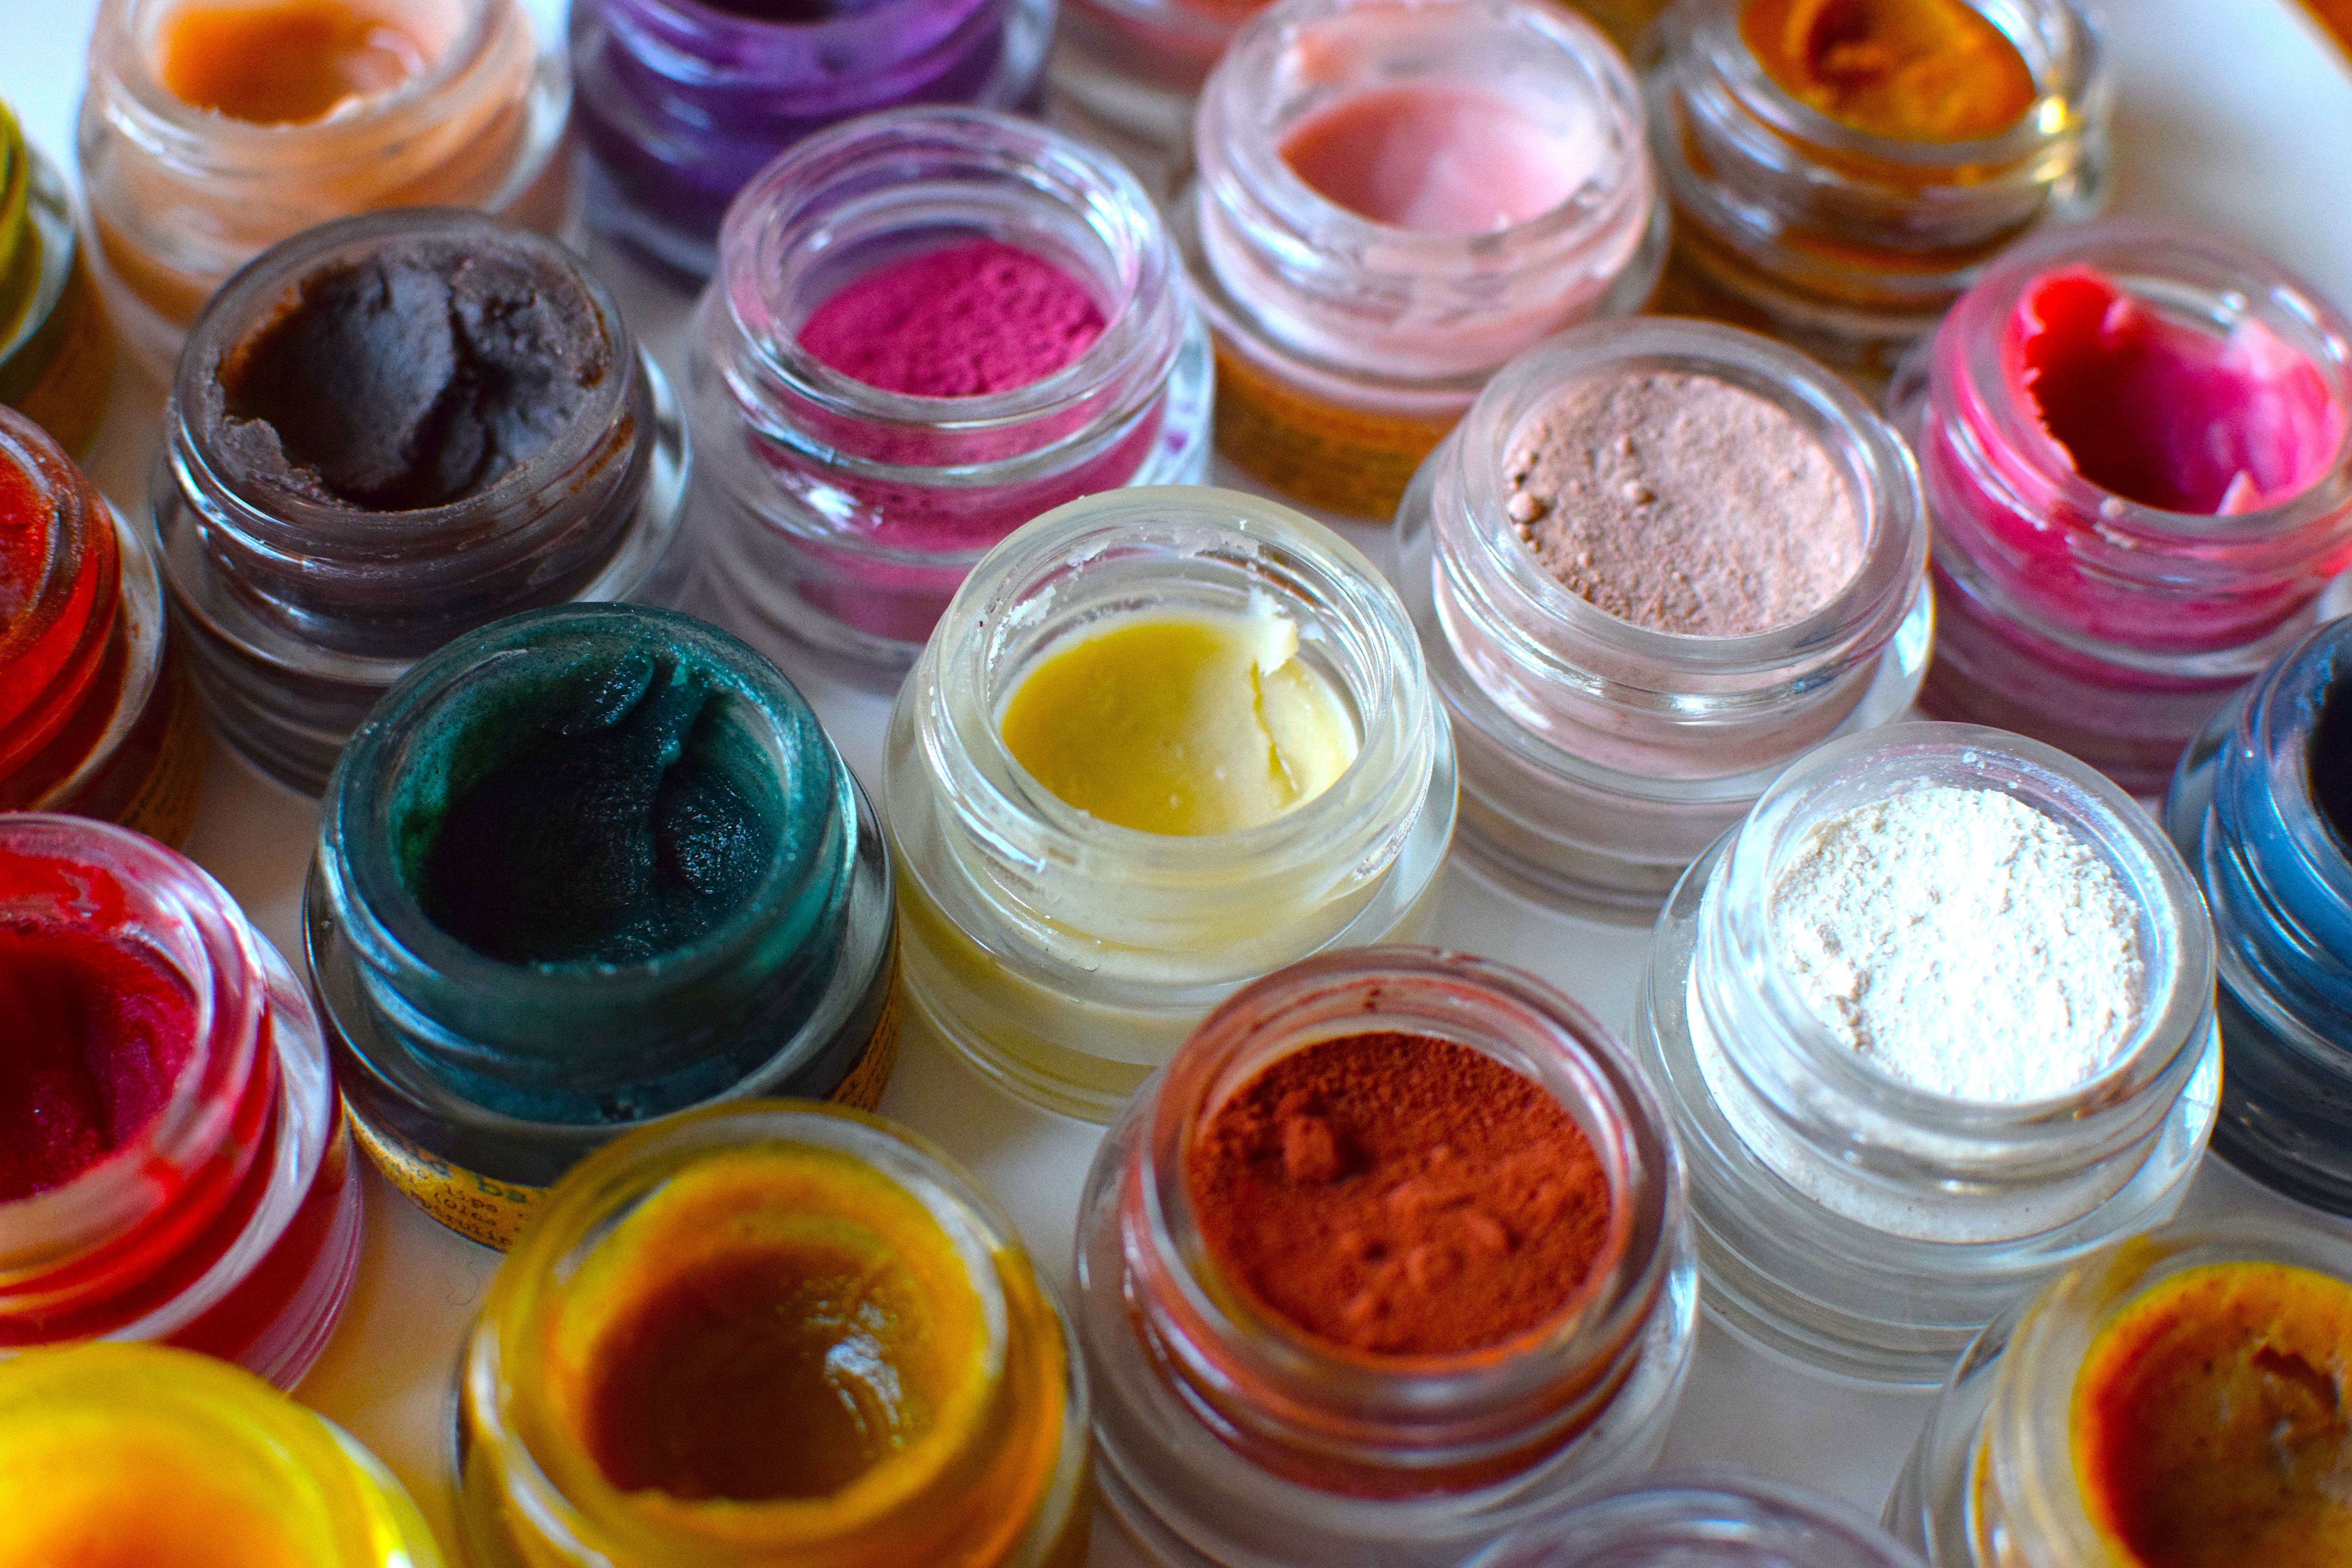 Plant Makeup is all natural plant based, plant pigmented